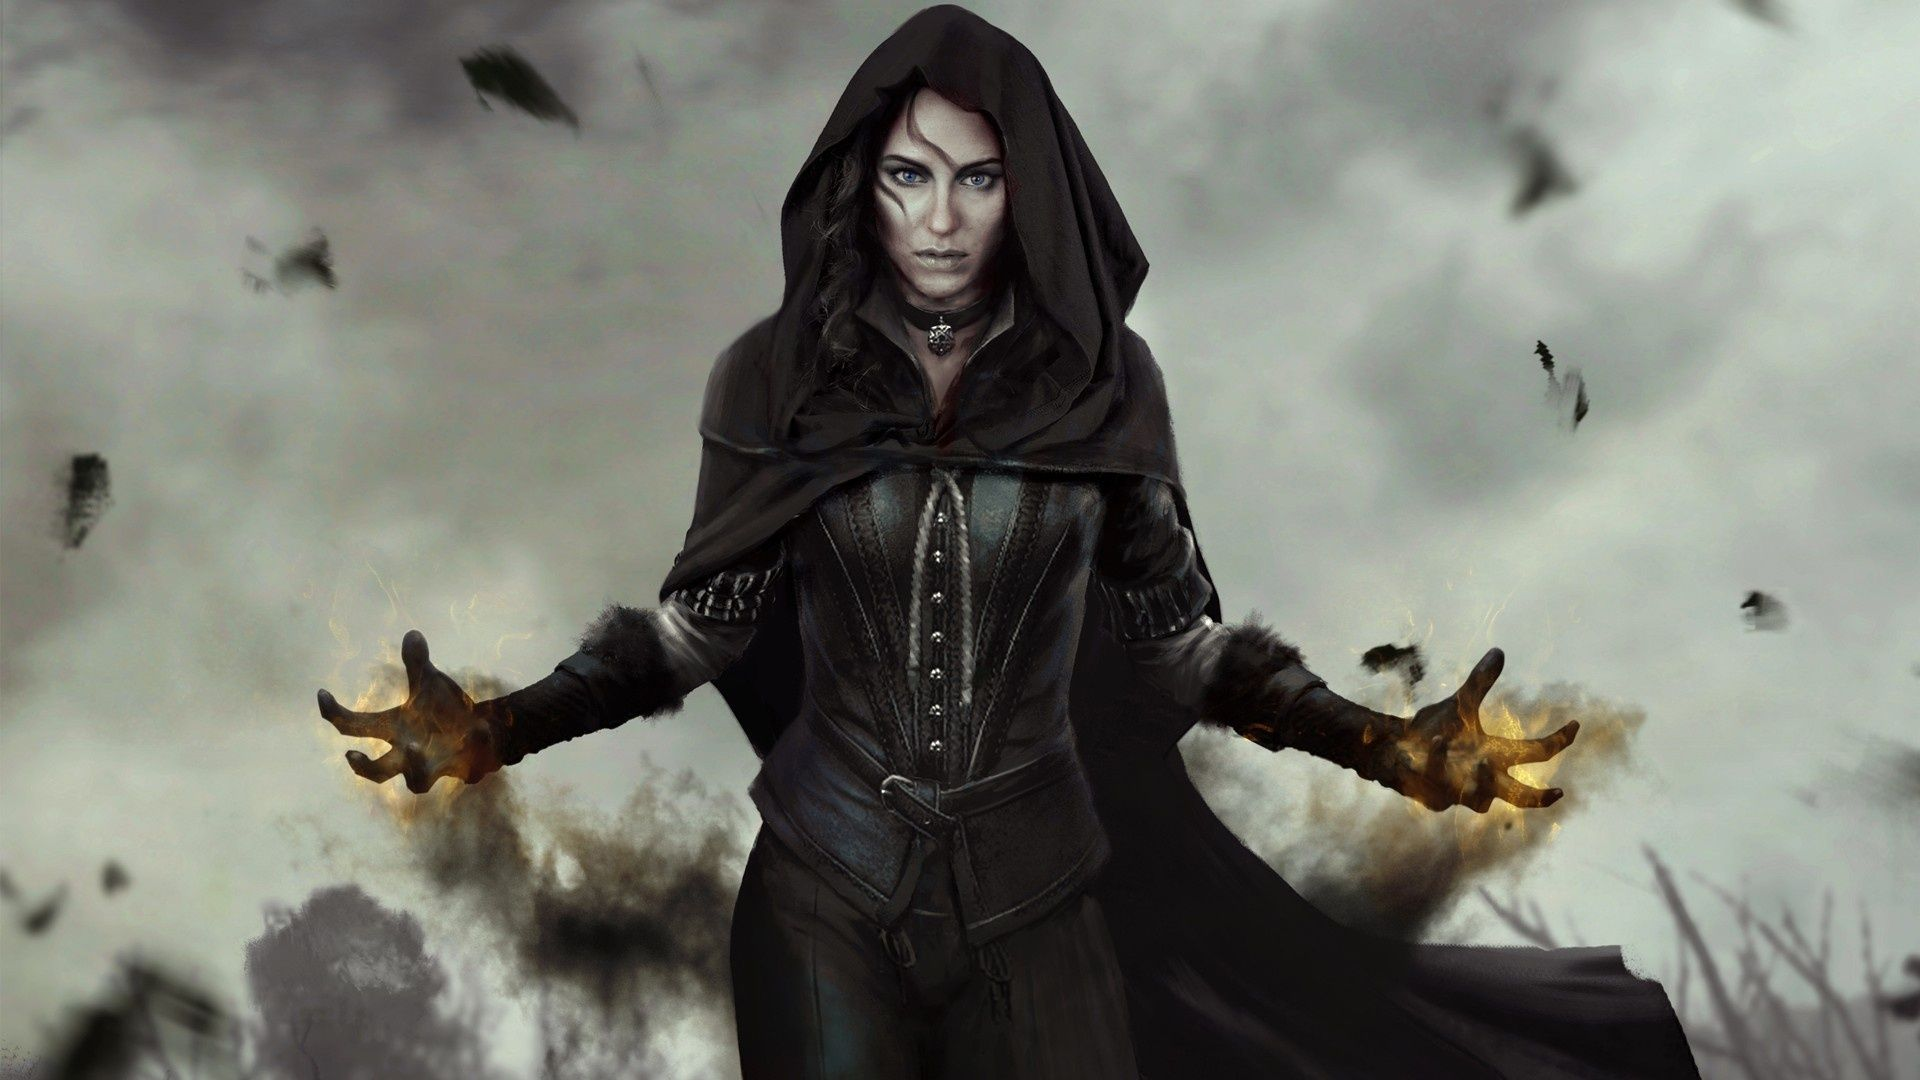 21 Witcher 3 Yennefer Vergerberg Wallpapers Wallpaperboat